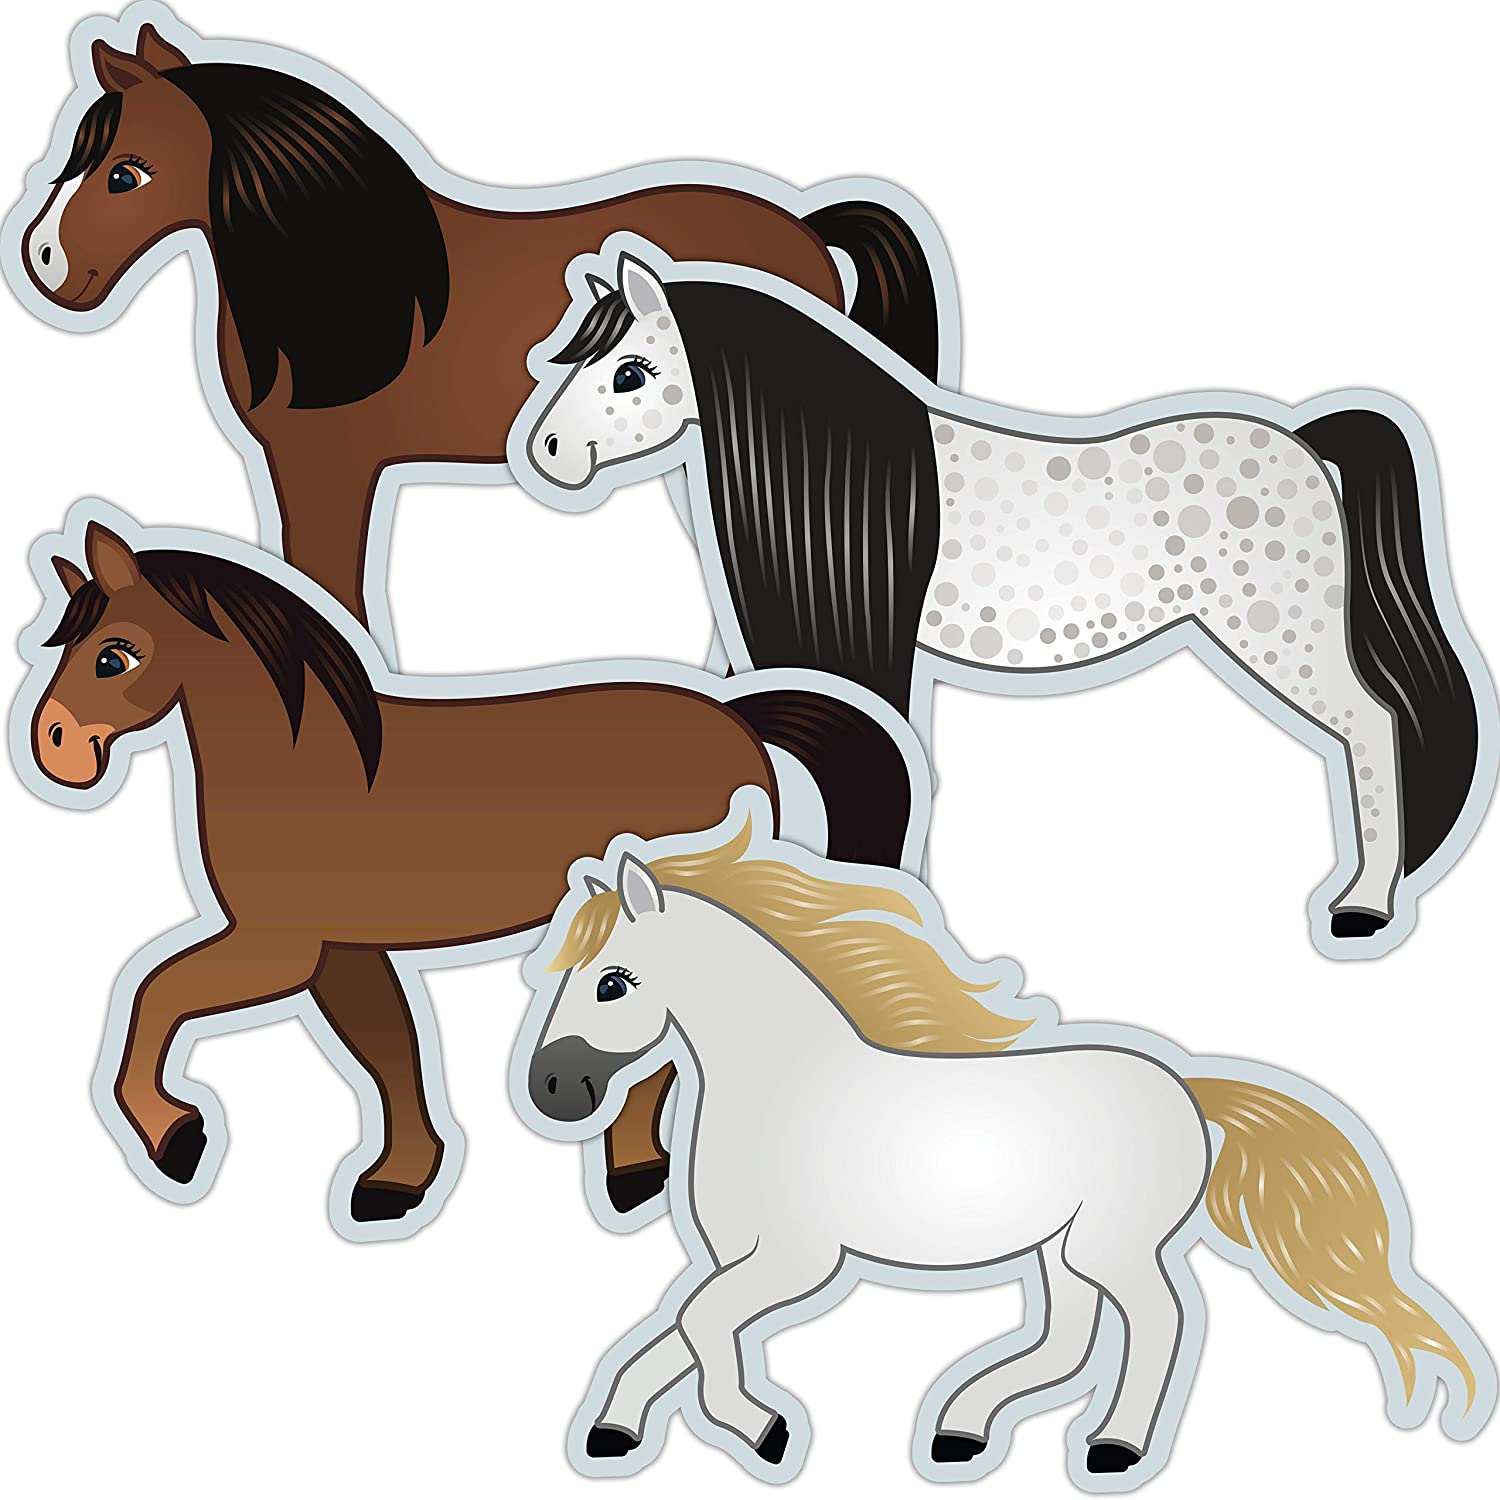 Horse Cutouts - Horse Birthday Party Decorations Supplies Classroom Decor Equestrian Themed - 20 PCS